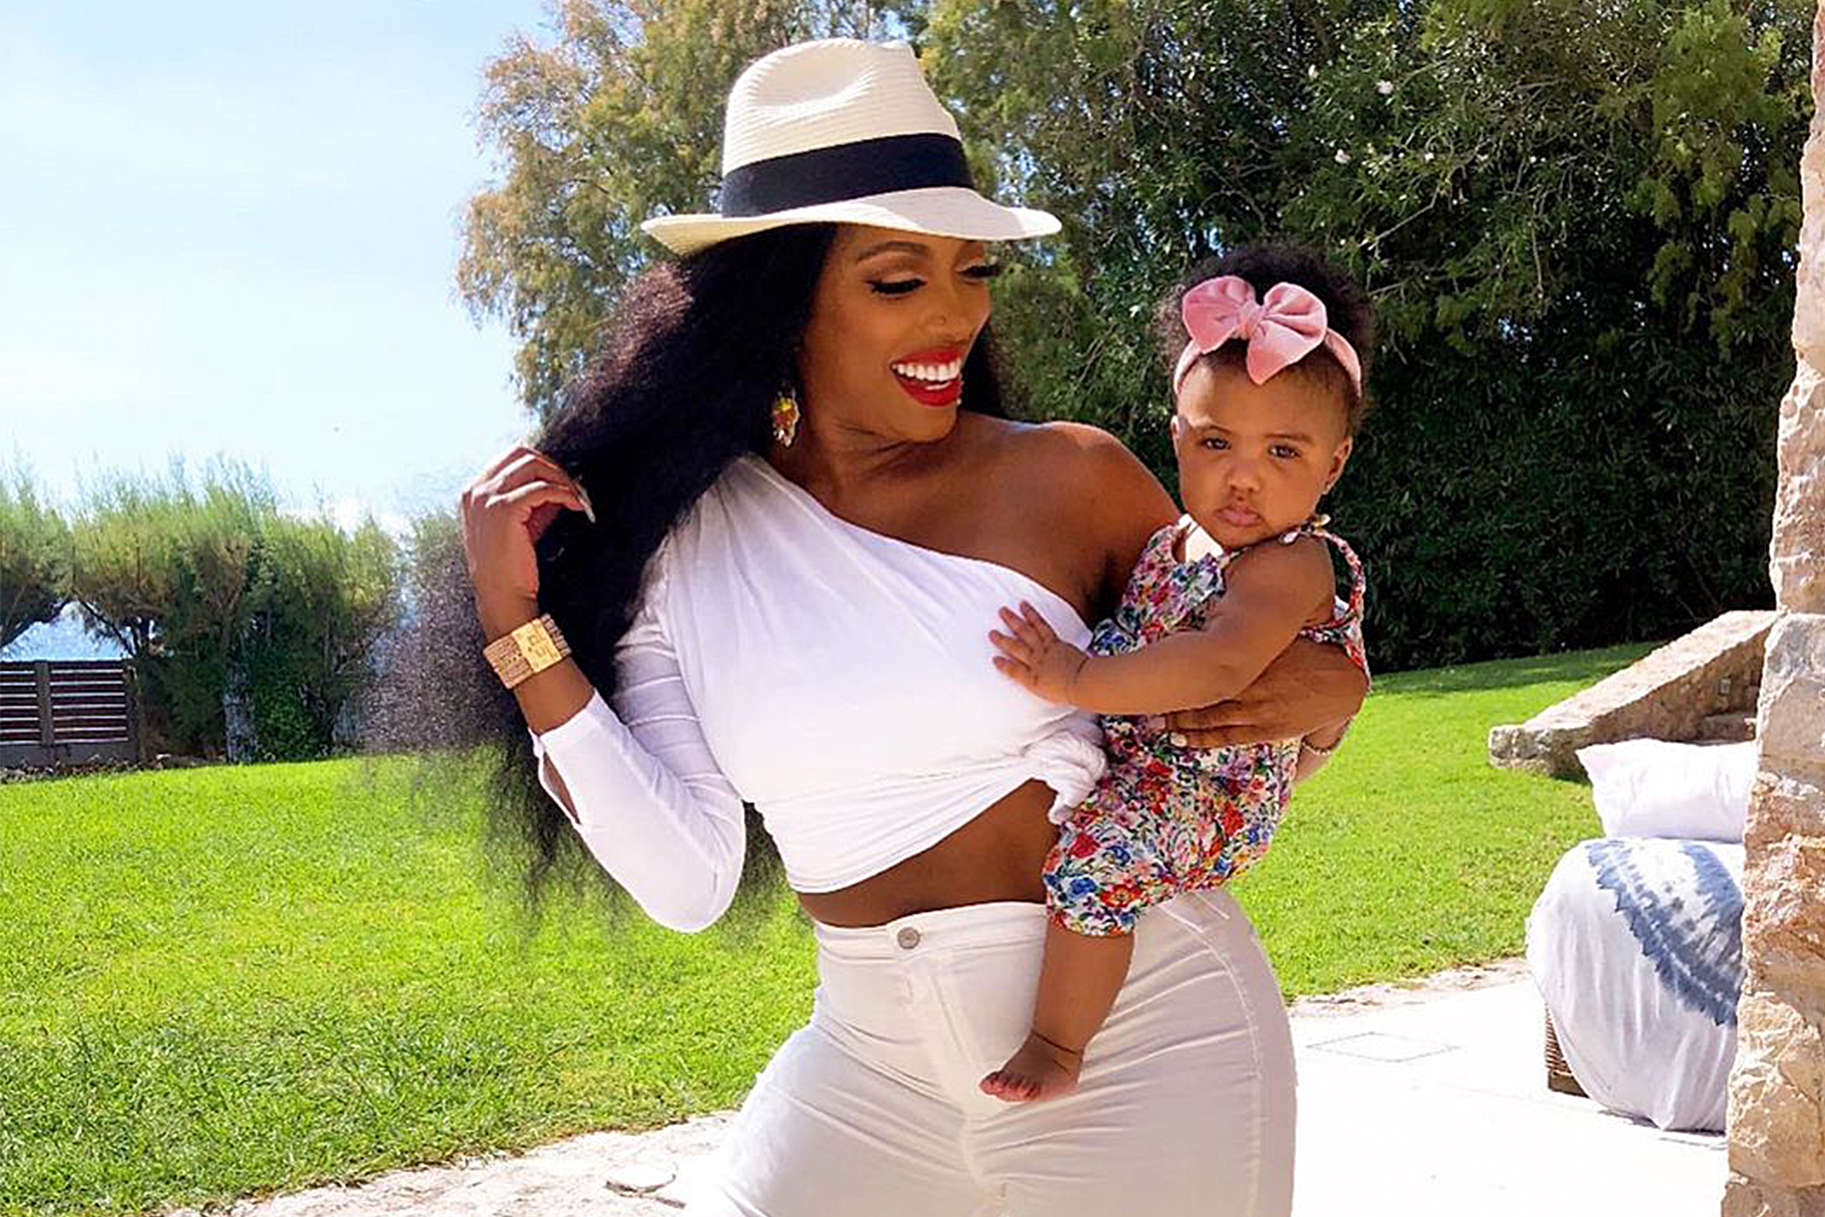 Porsha Williams' Baby Girl Pilar Jhena Is Already Trying To Stand On Her Own - Watch The Sweet Clips